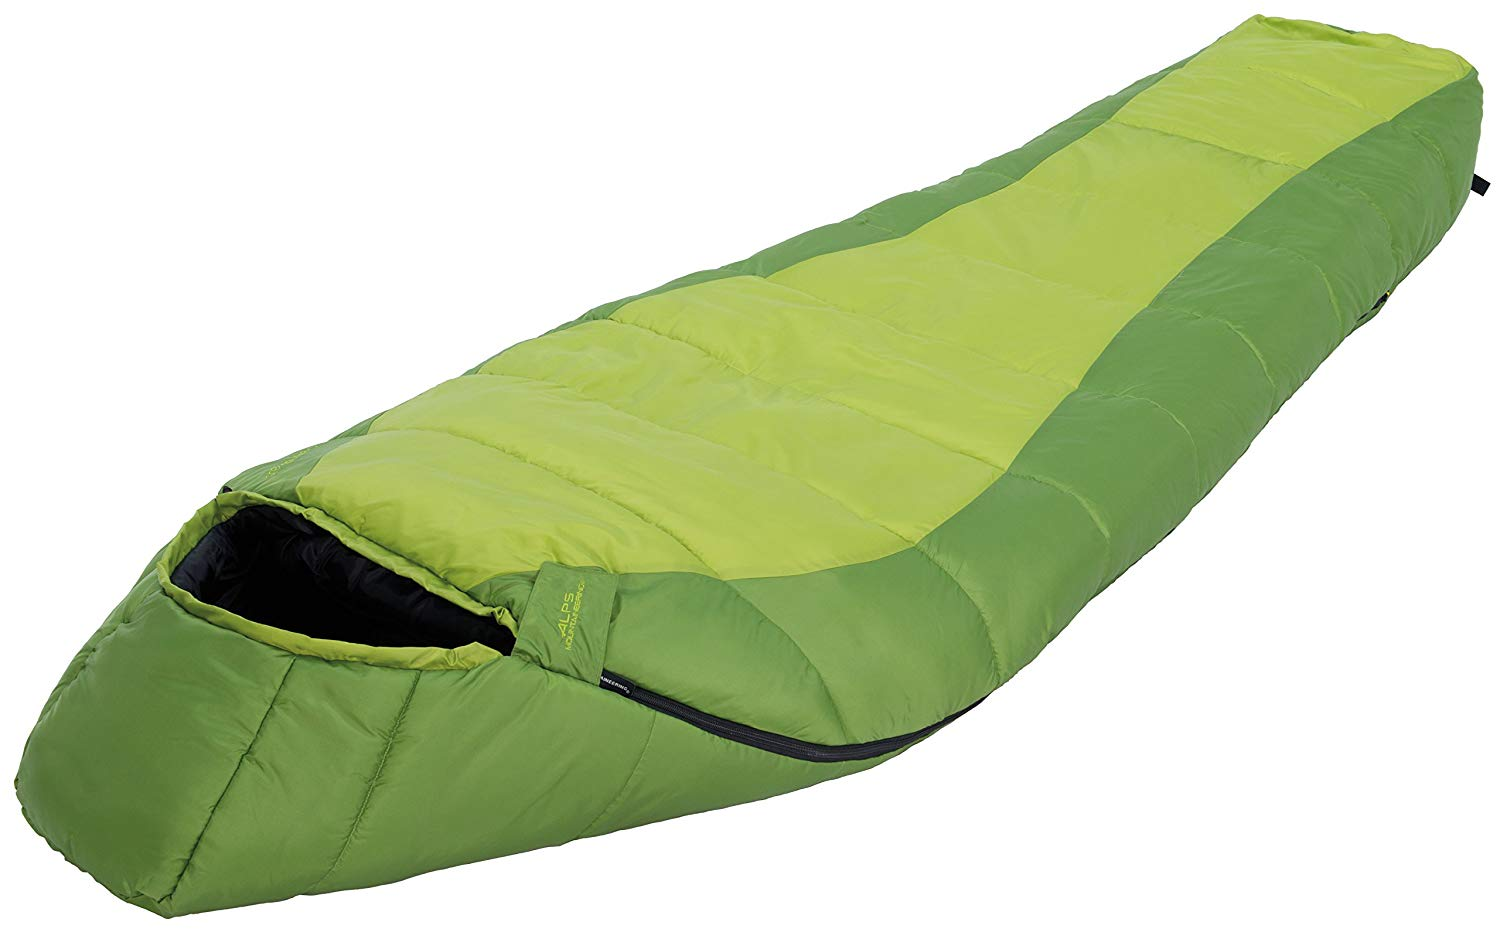 An image of Alps Mountaineering Crescent Lake 4593322 20 Degree Sleeping Bag